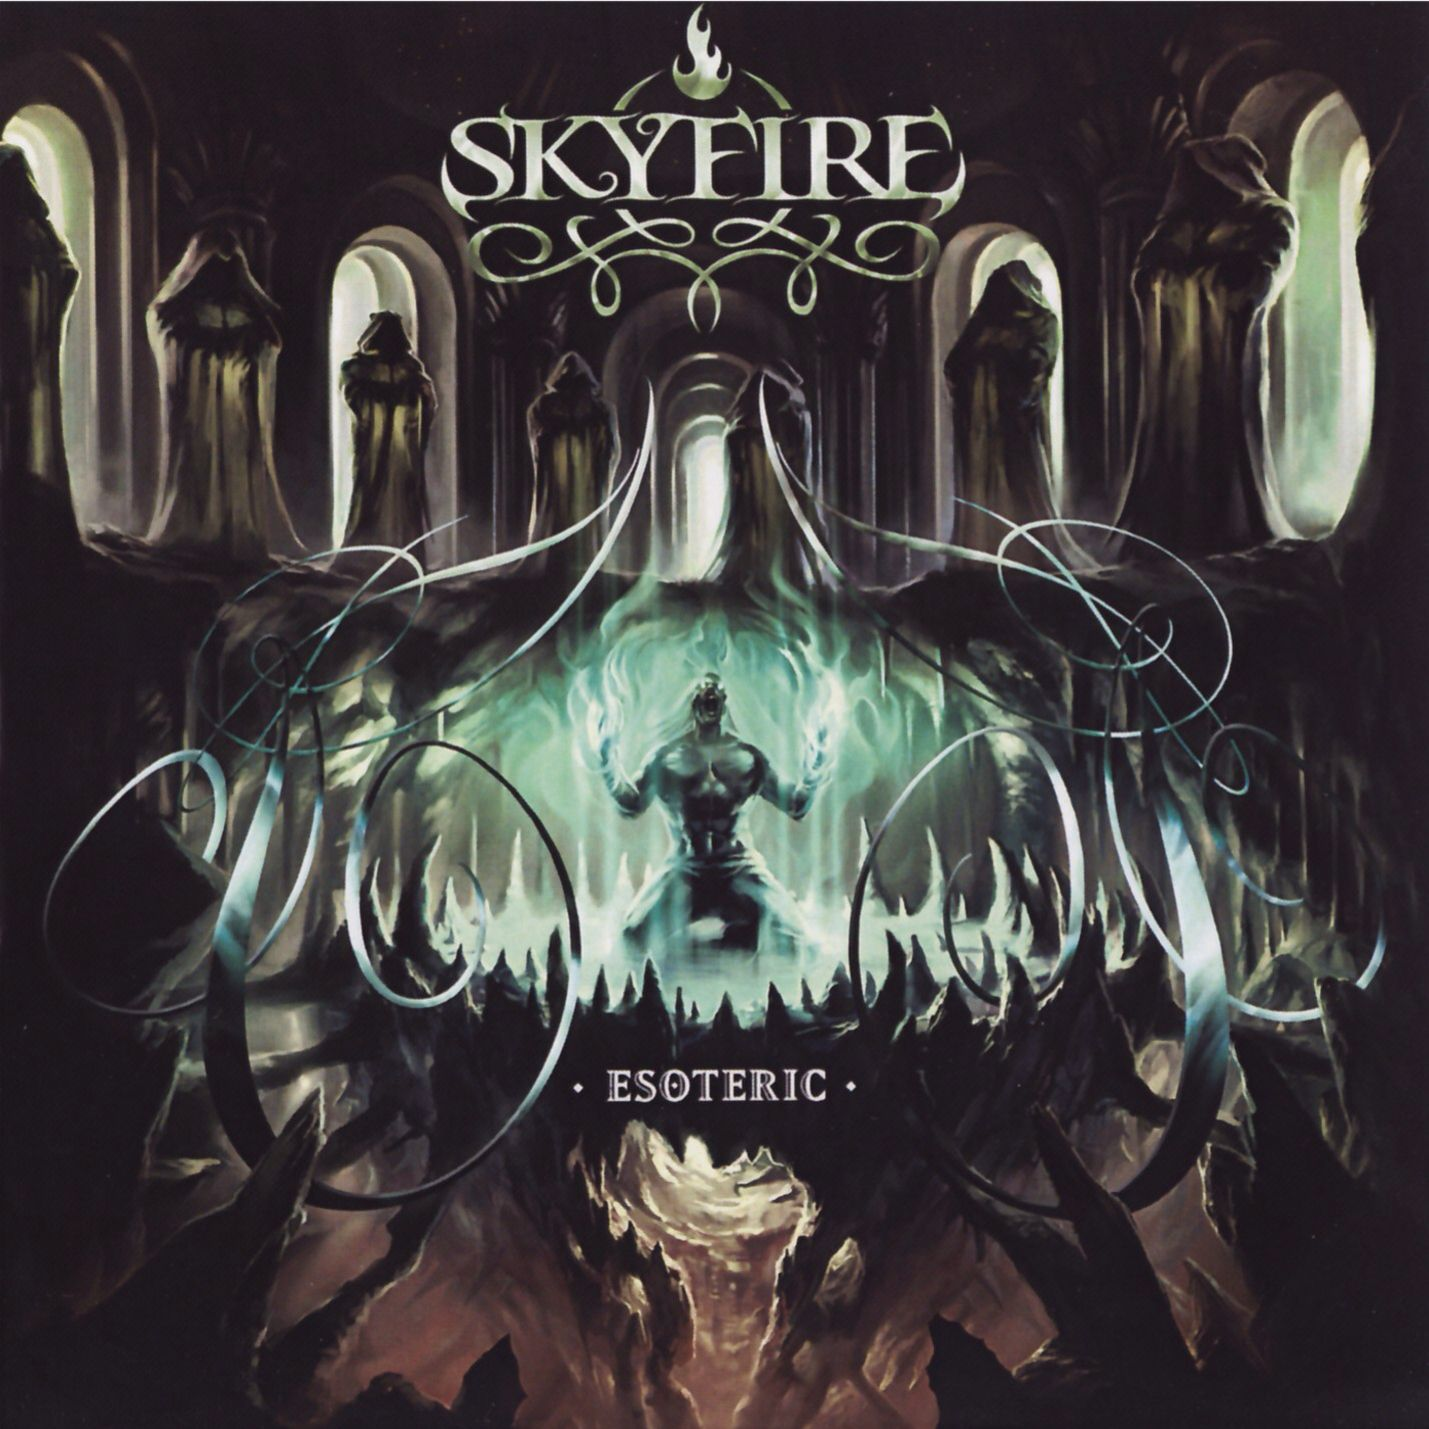 Skyfire - Esoteric | Best Album Covers | Death metal, Metal albums